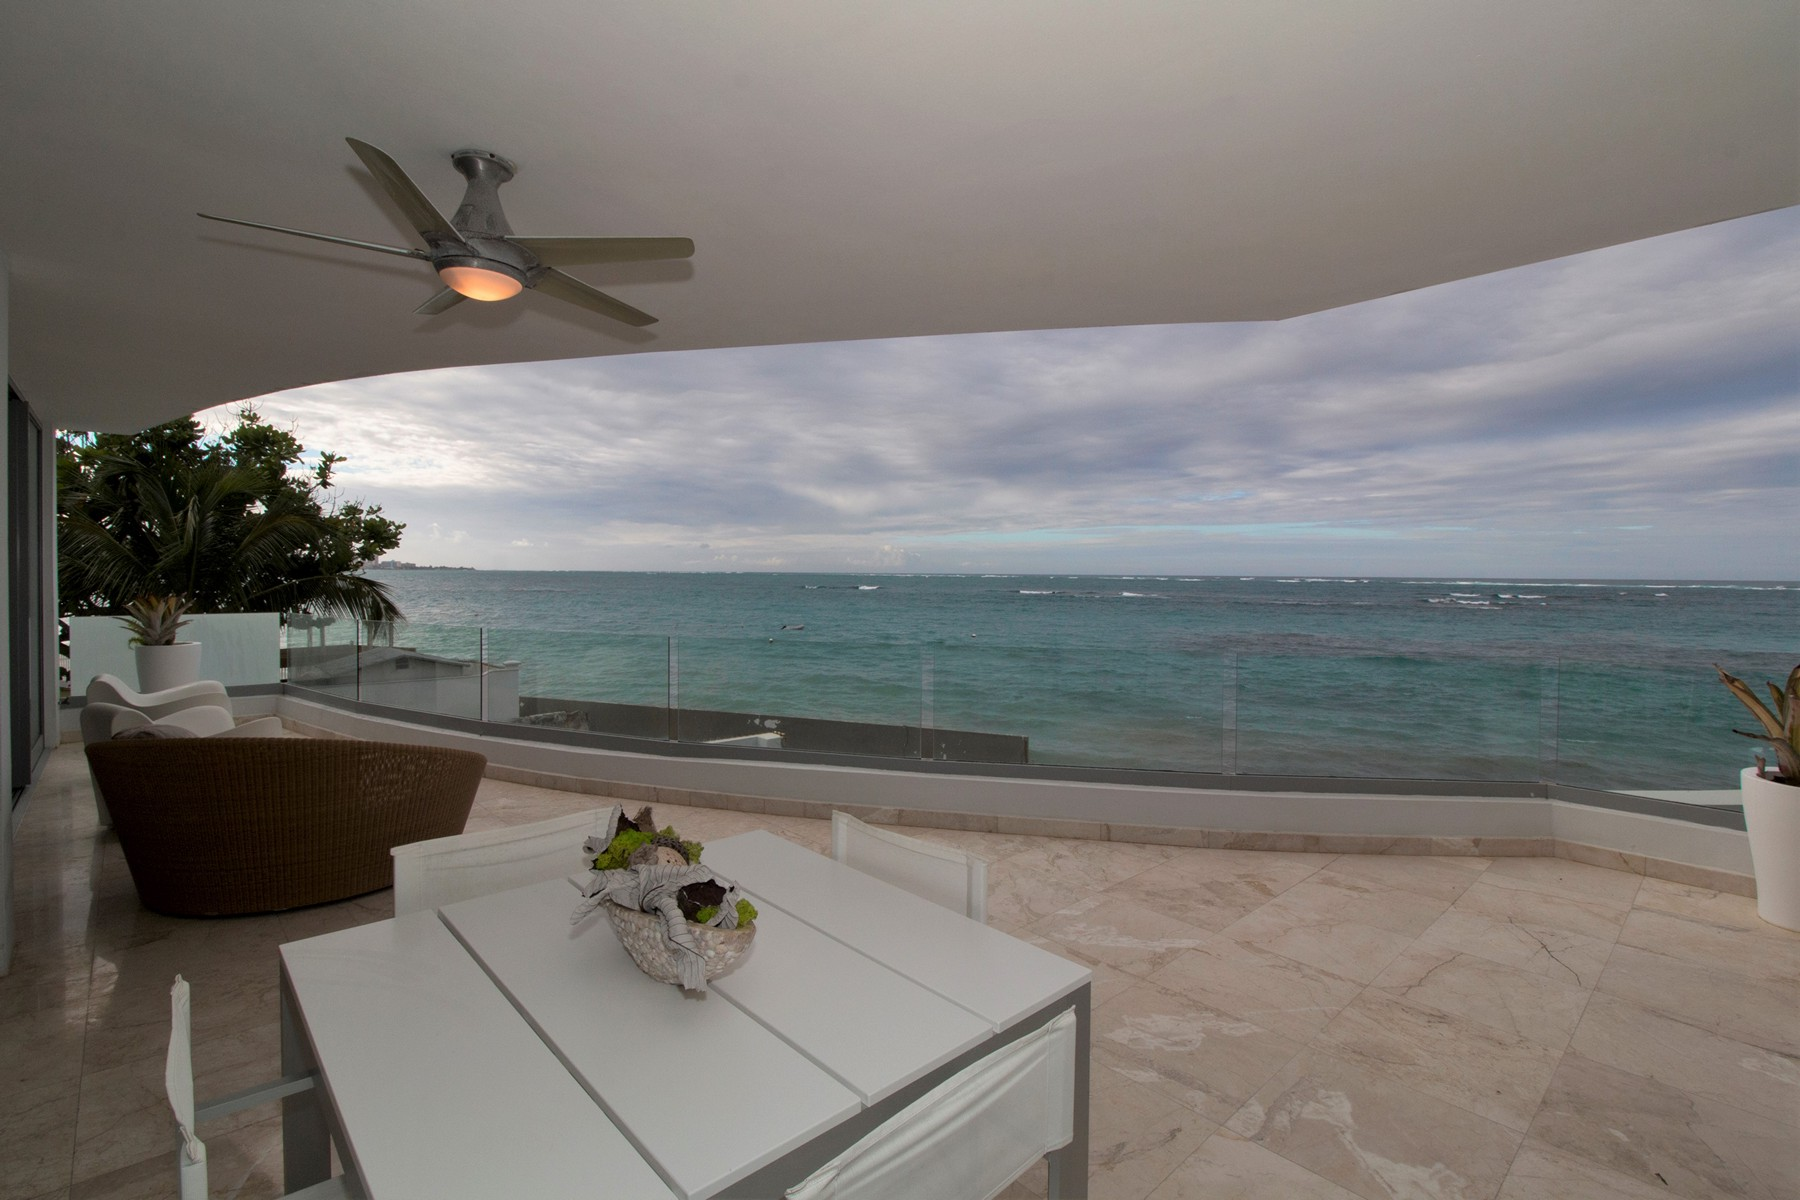 Additional photo for property listing at Striking Ocean front residence, Azure on Almendro 1 Almendro Street Apt 203 San Juan, Puerto Rico 00913 Puerto Rico